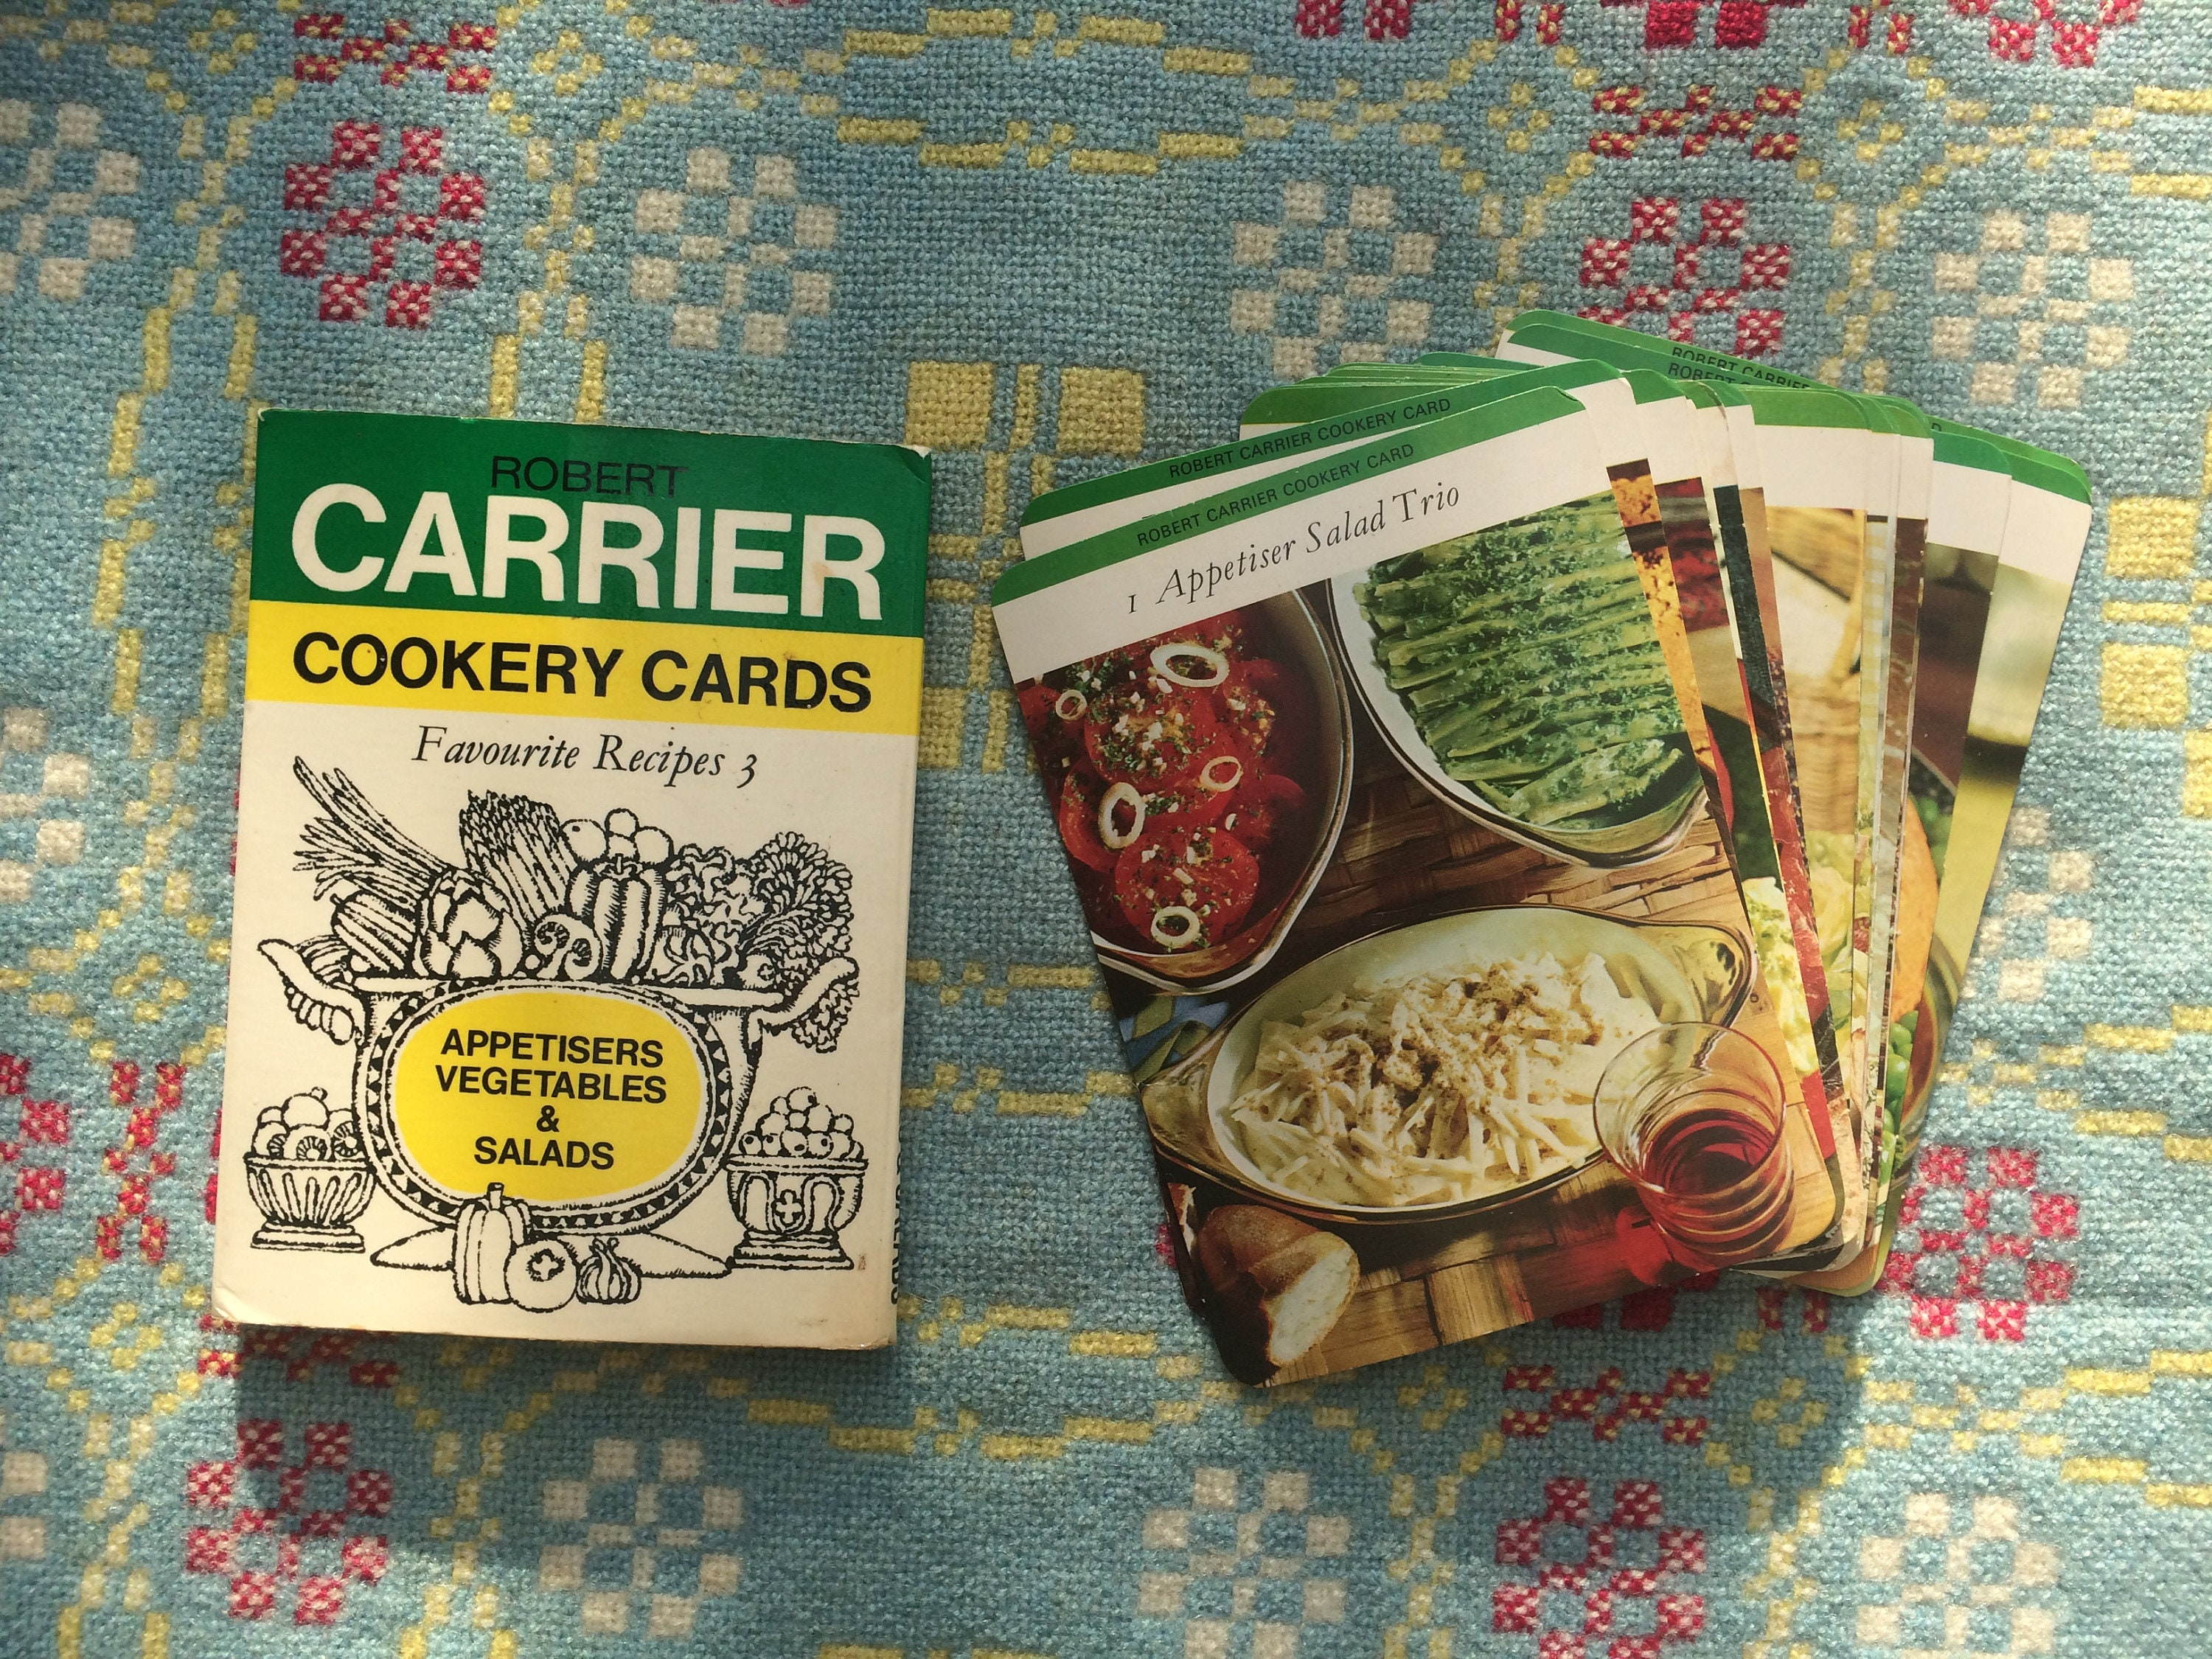 Sixties Recipe Cards  Vintage Robert Carrier Cookery Cards  Appetisers Vegetables and Salads